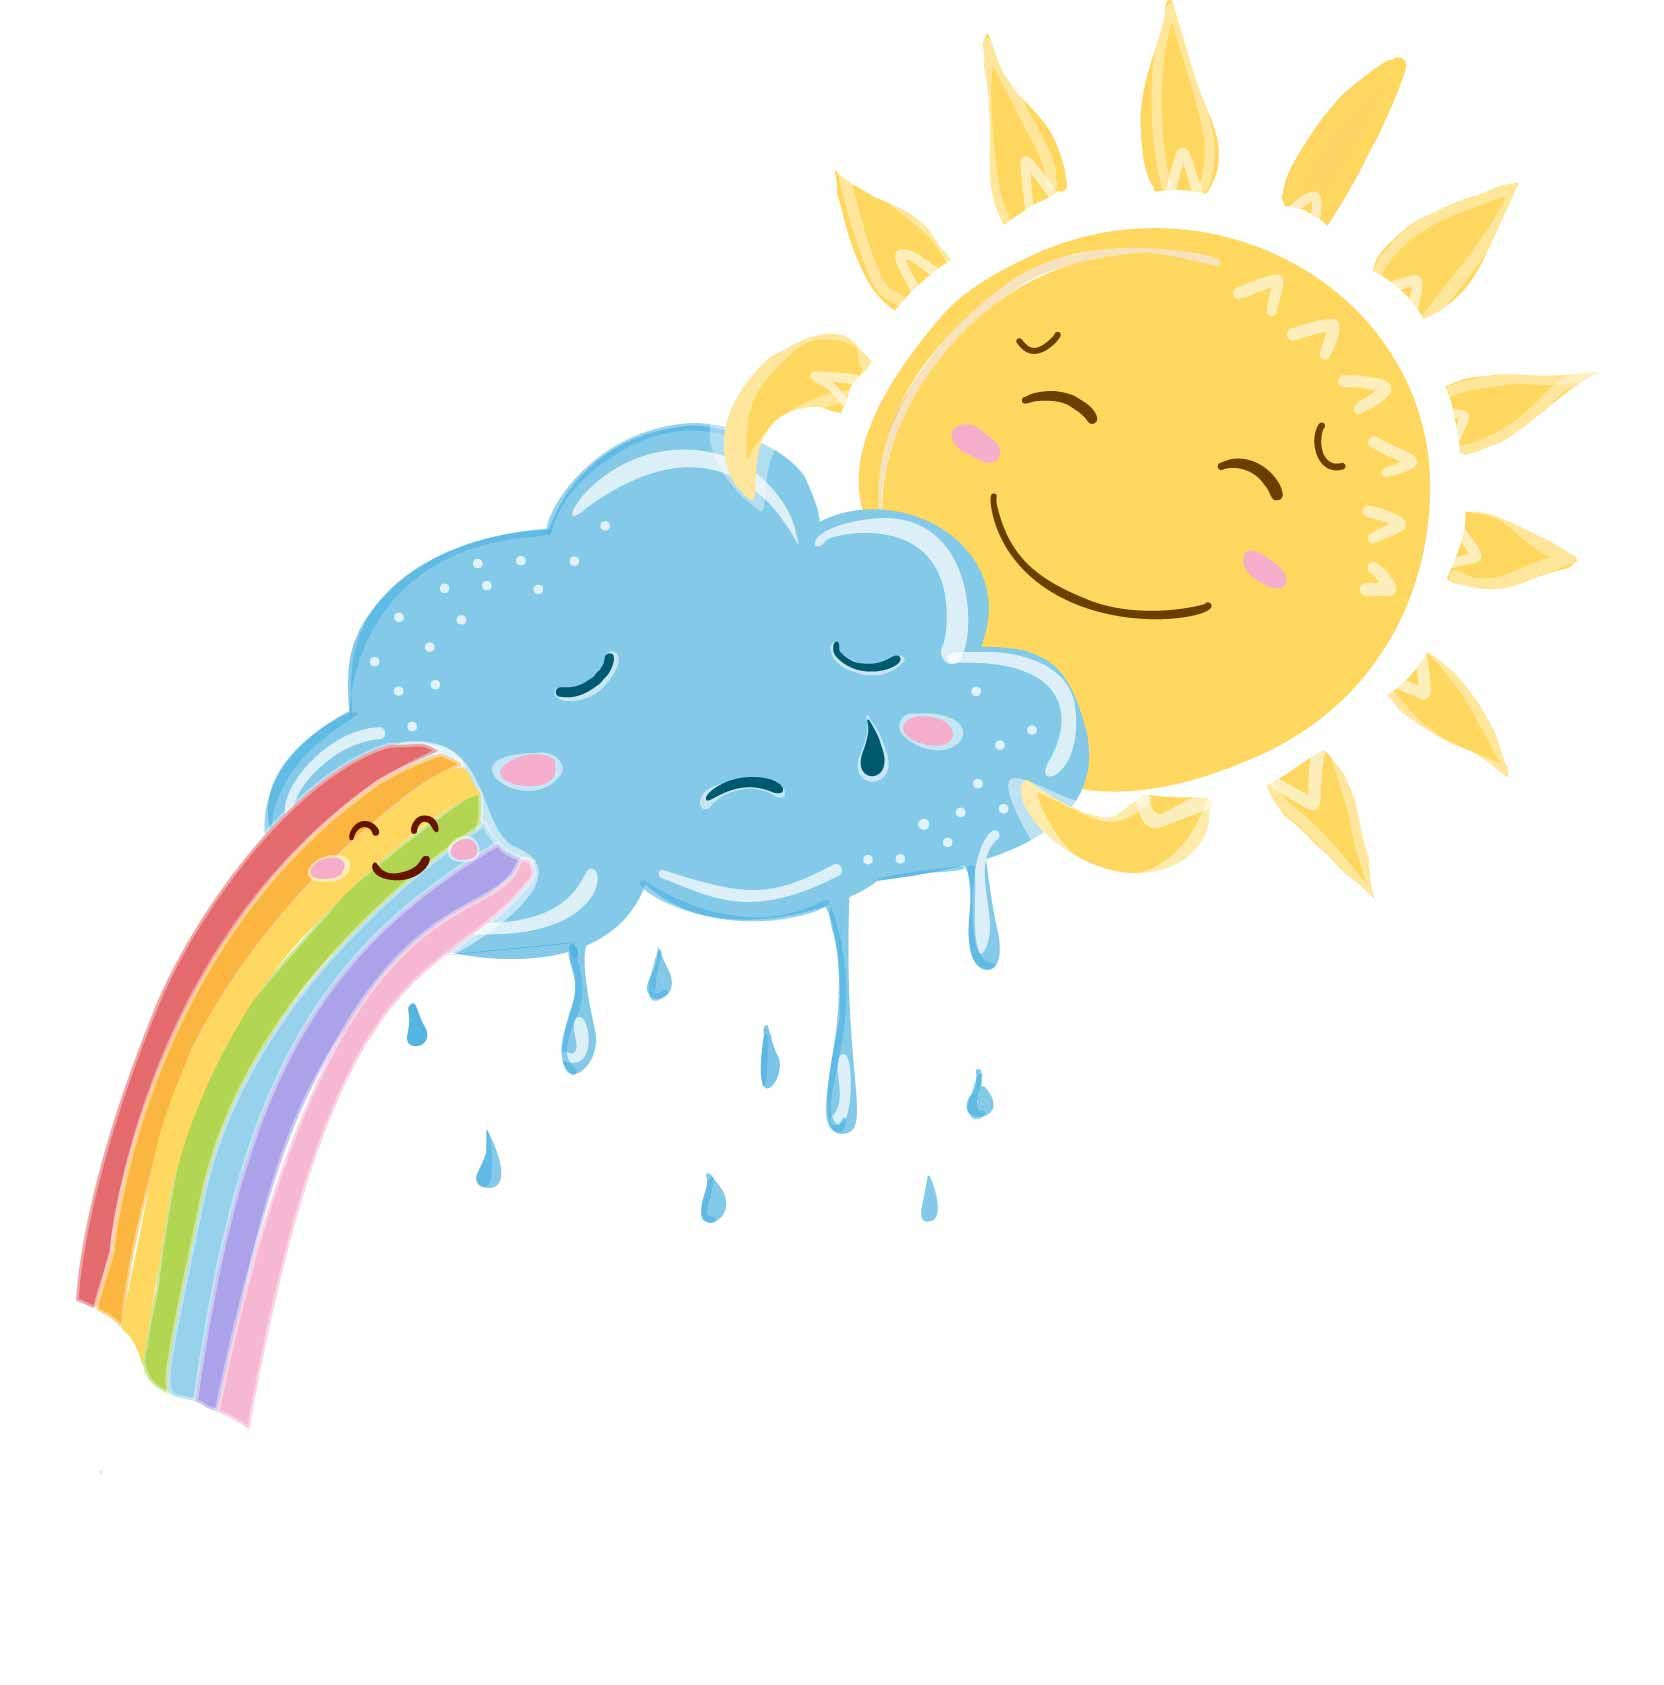 Sad cliparts for picsart clip freeuse library Rainbow and sun cheer up sad cloud illustration. Cute ... clip freeuse library